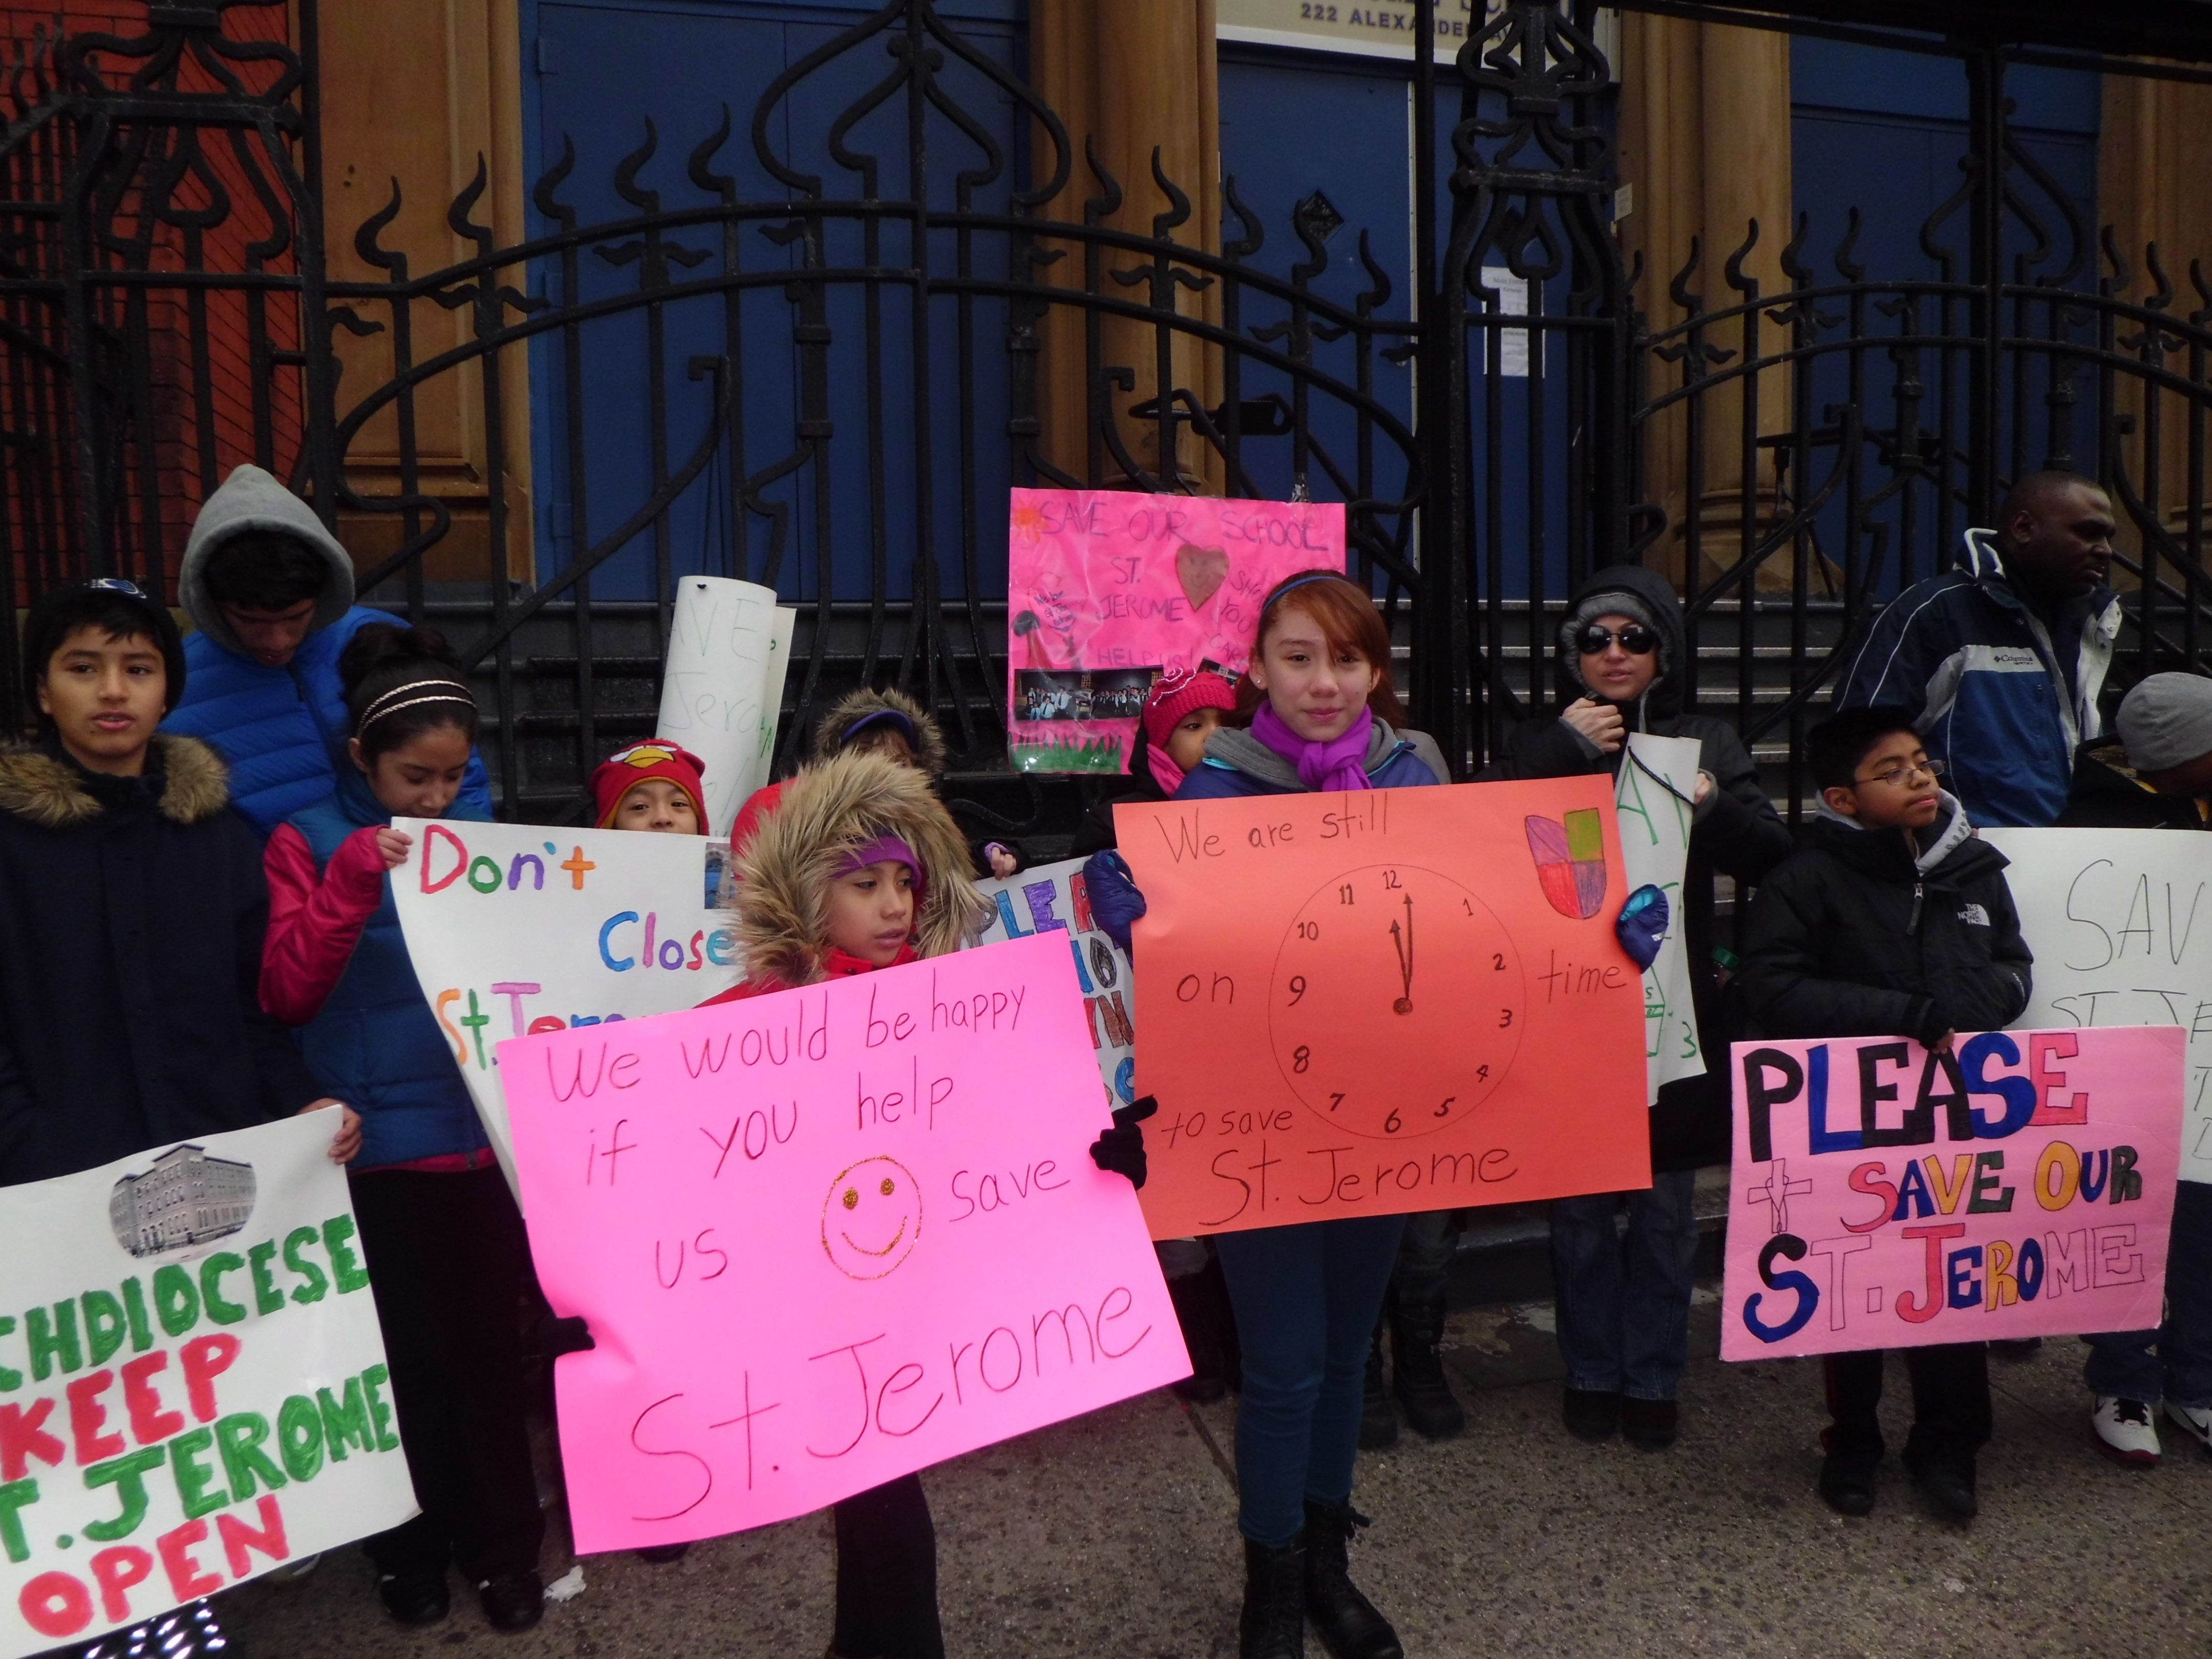 Students in front of St. Jerome on Jan. 21 urged the Archdiocese of New York not to close the Catholic School.